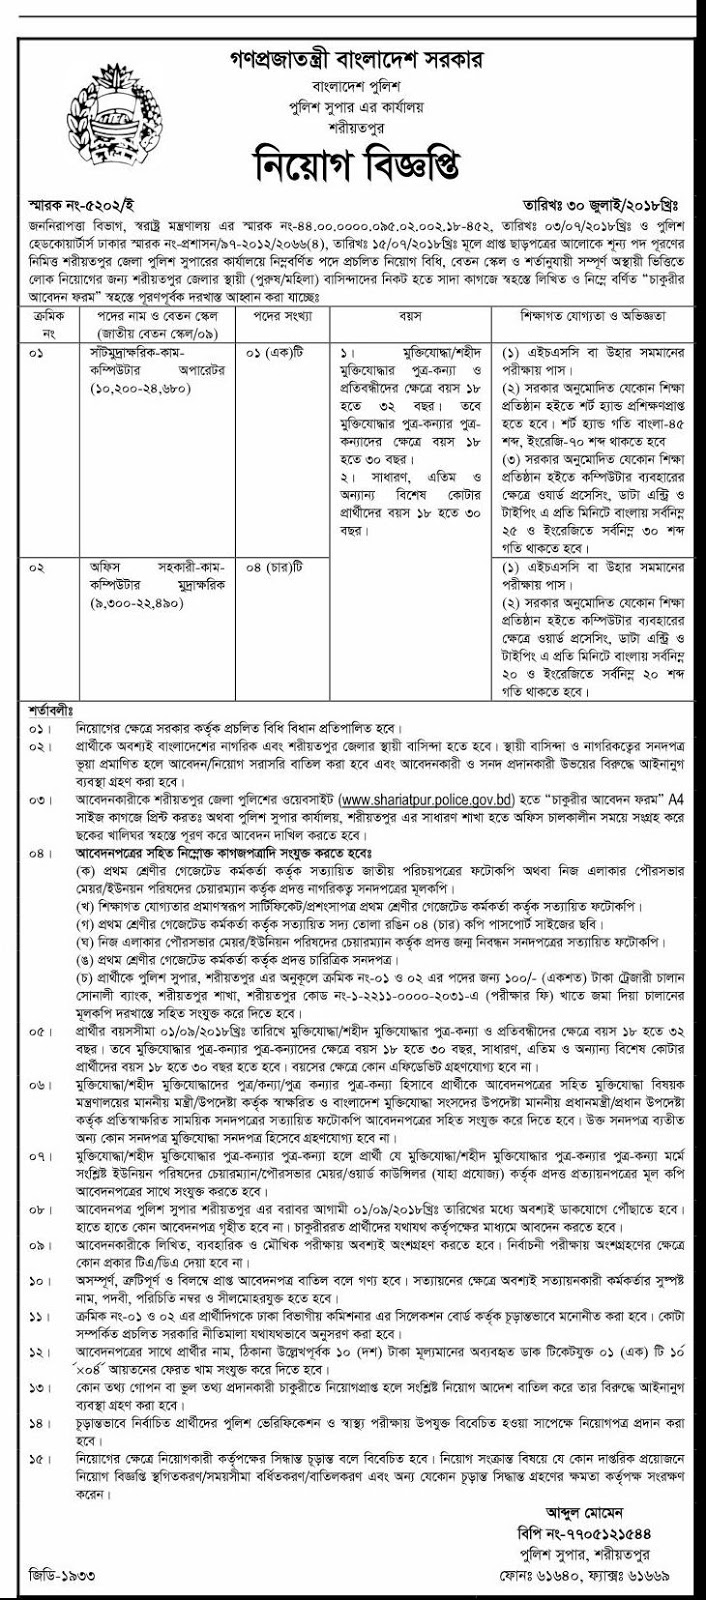 Police Super, Shariatpur Job Circular 2018